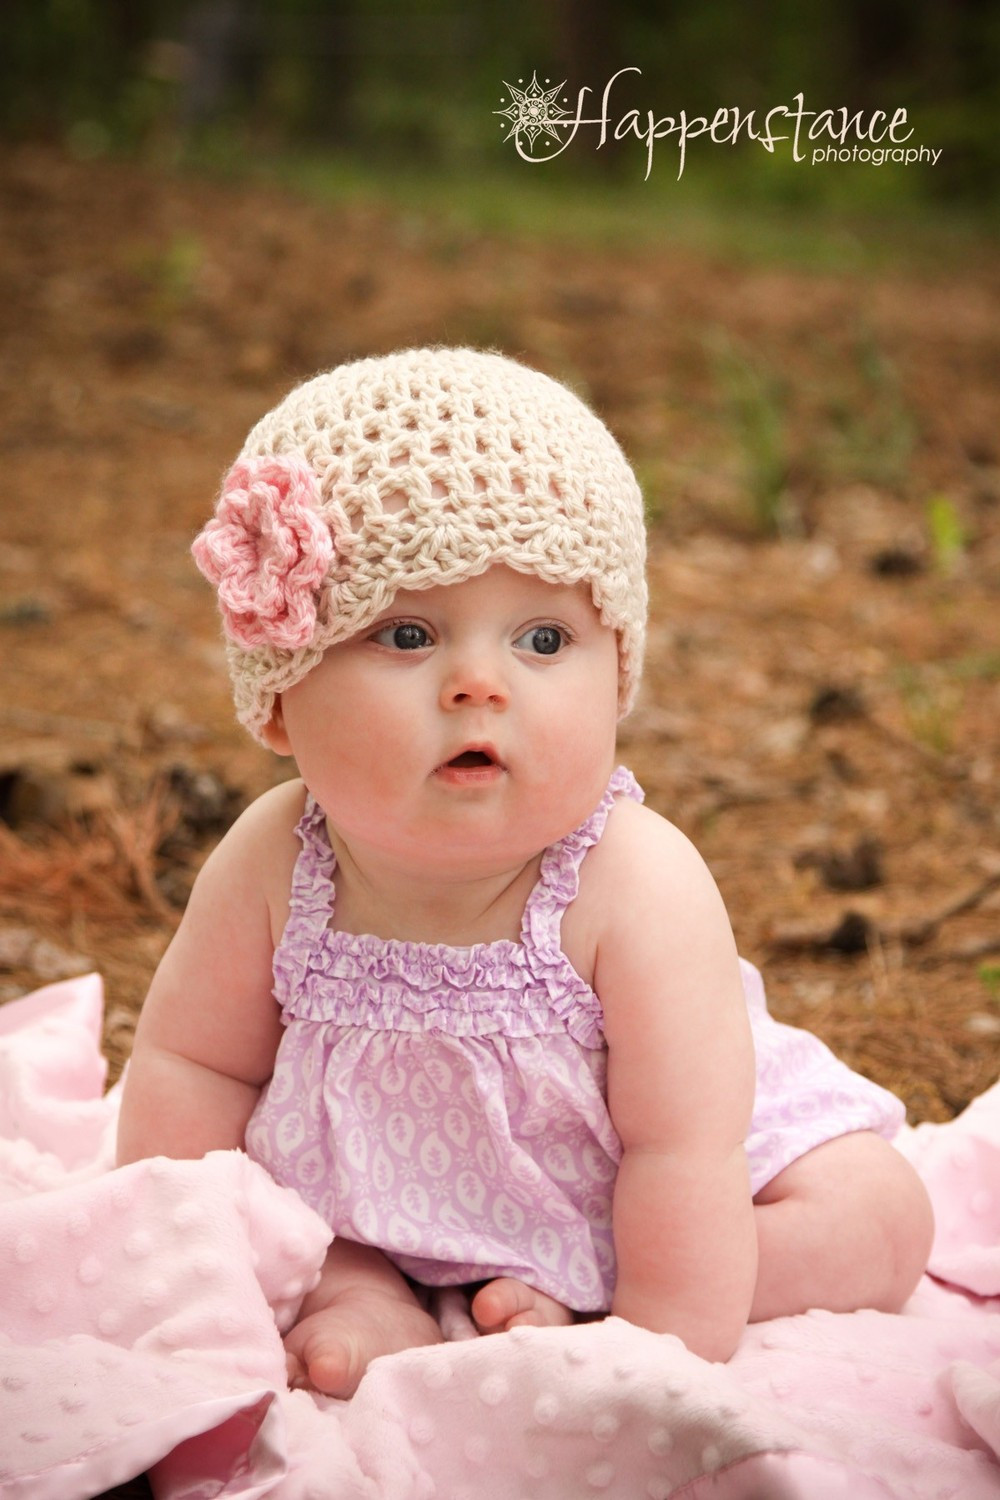 Crochet toddler Hat Awesome Crochet Newborn Baby Hats with Pumpkin Cupcake Pattern Of Marvelous 41 Photos Crochet toddler Hat